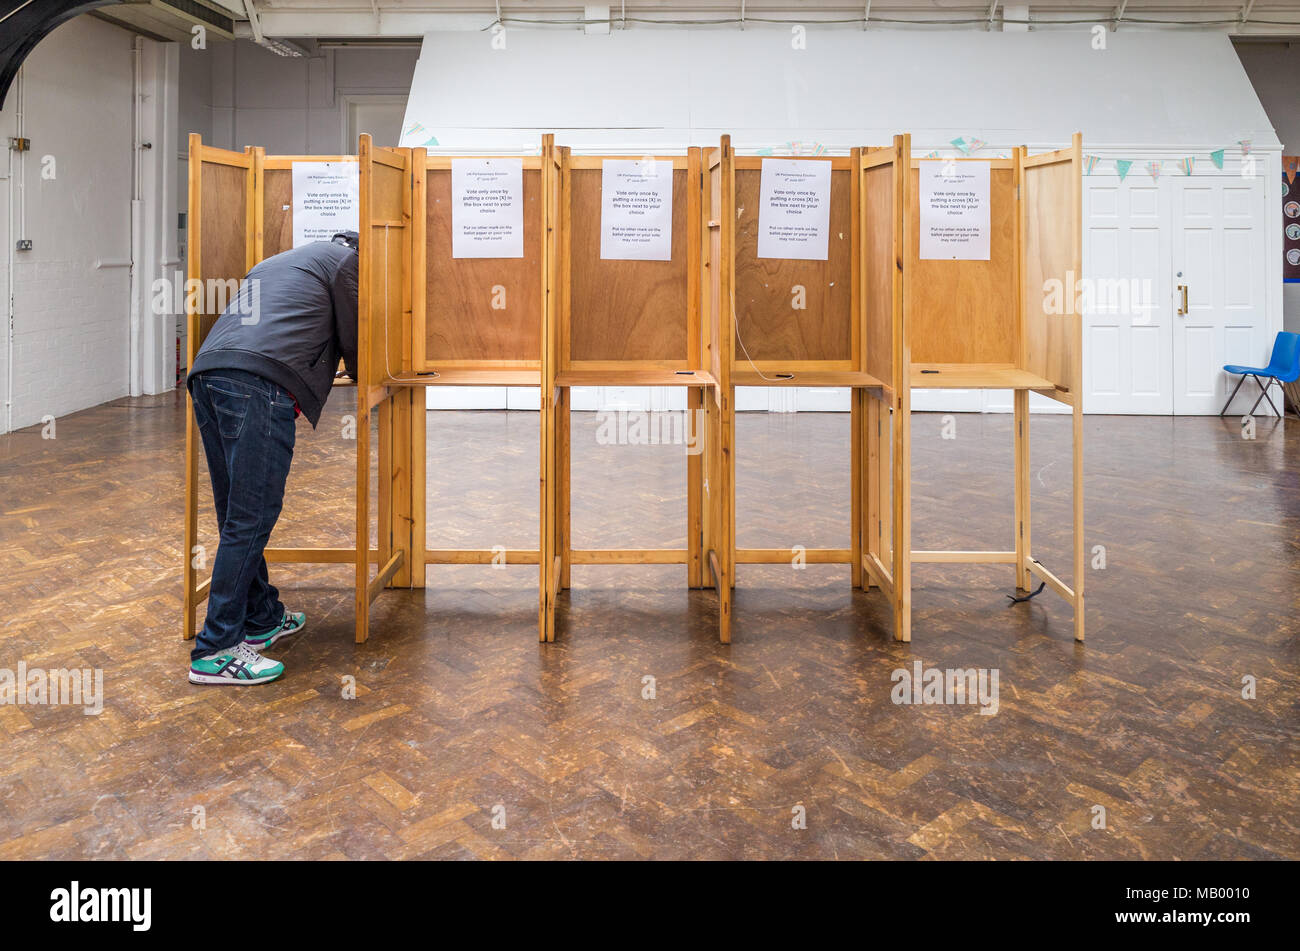 Voting booths in Haringey, London, UK - Stock Image